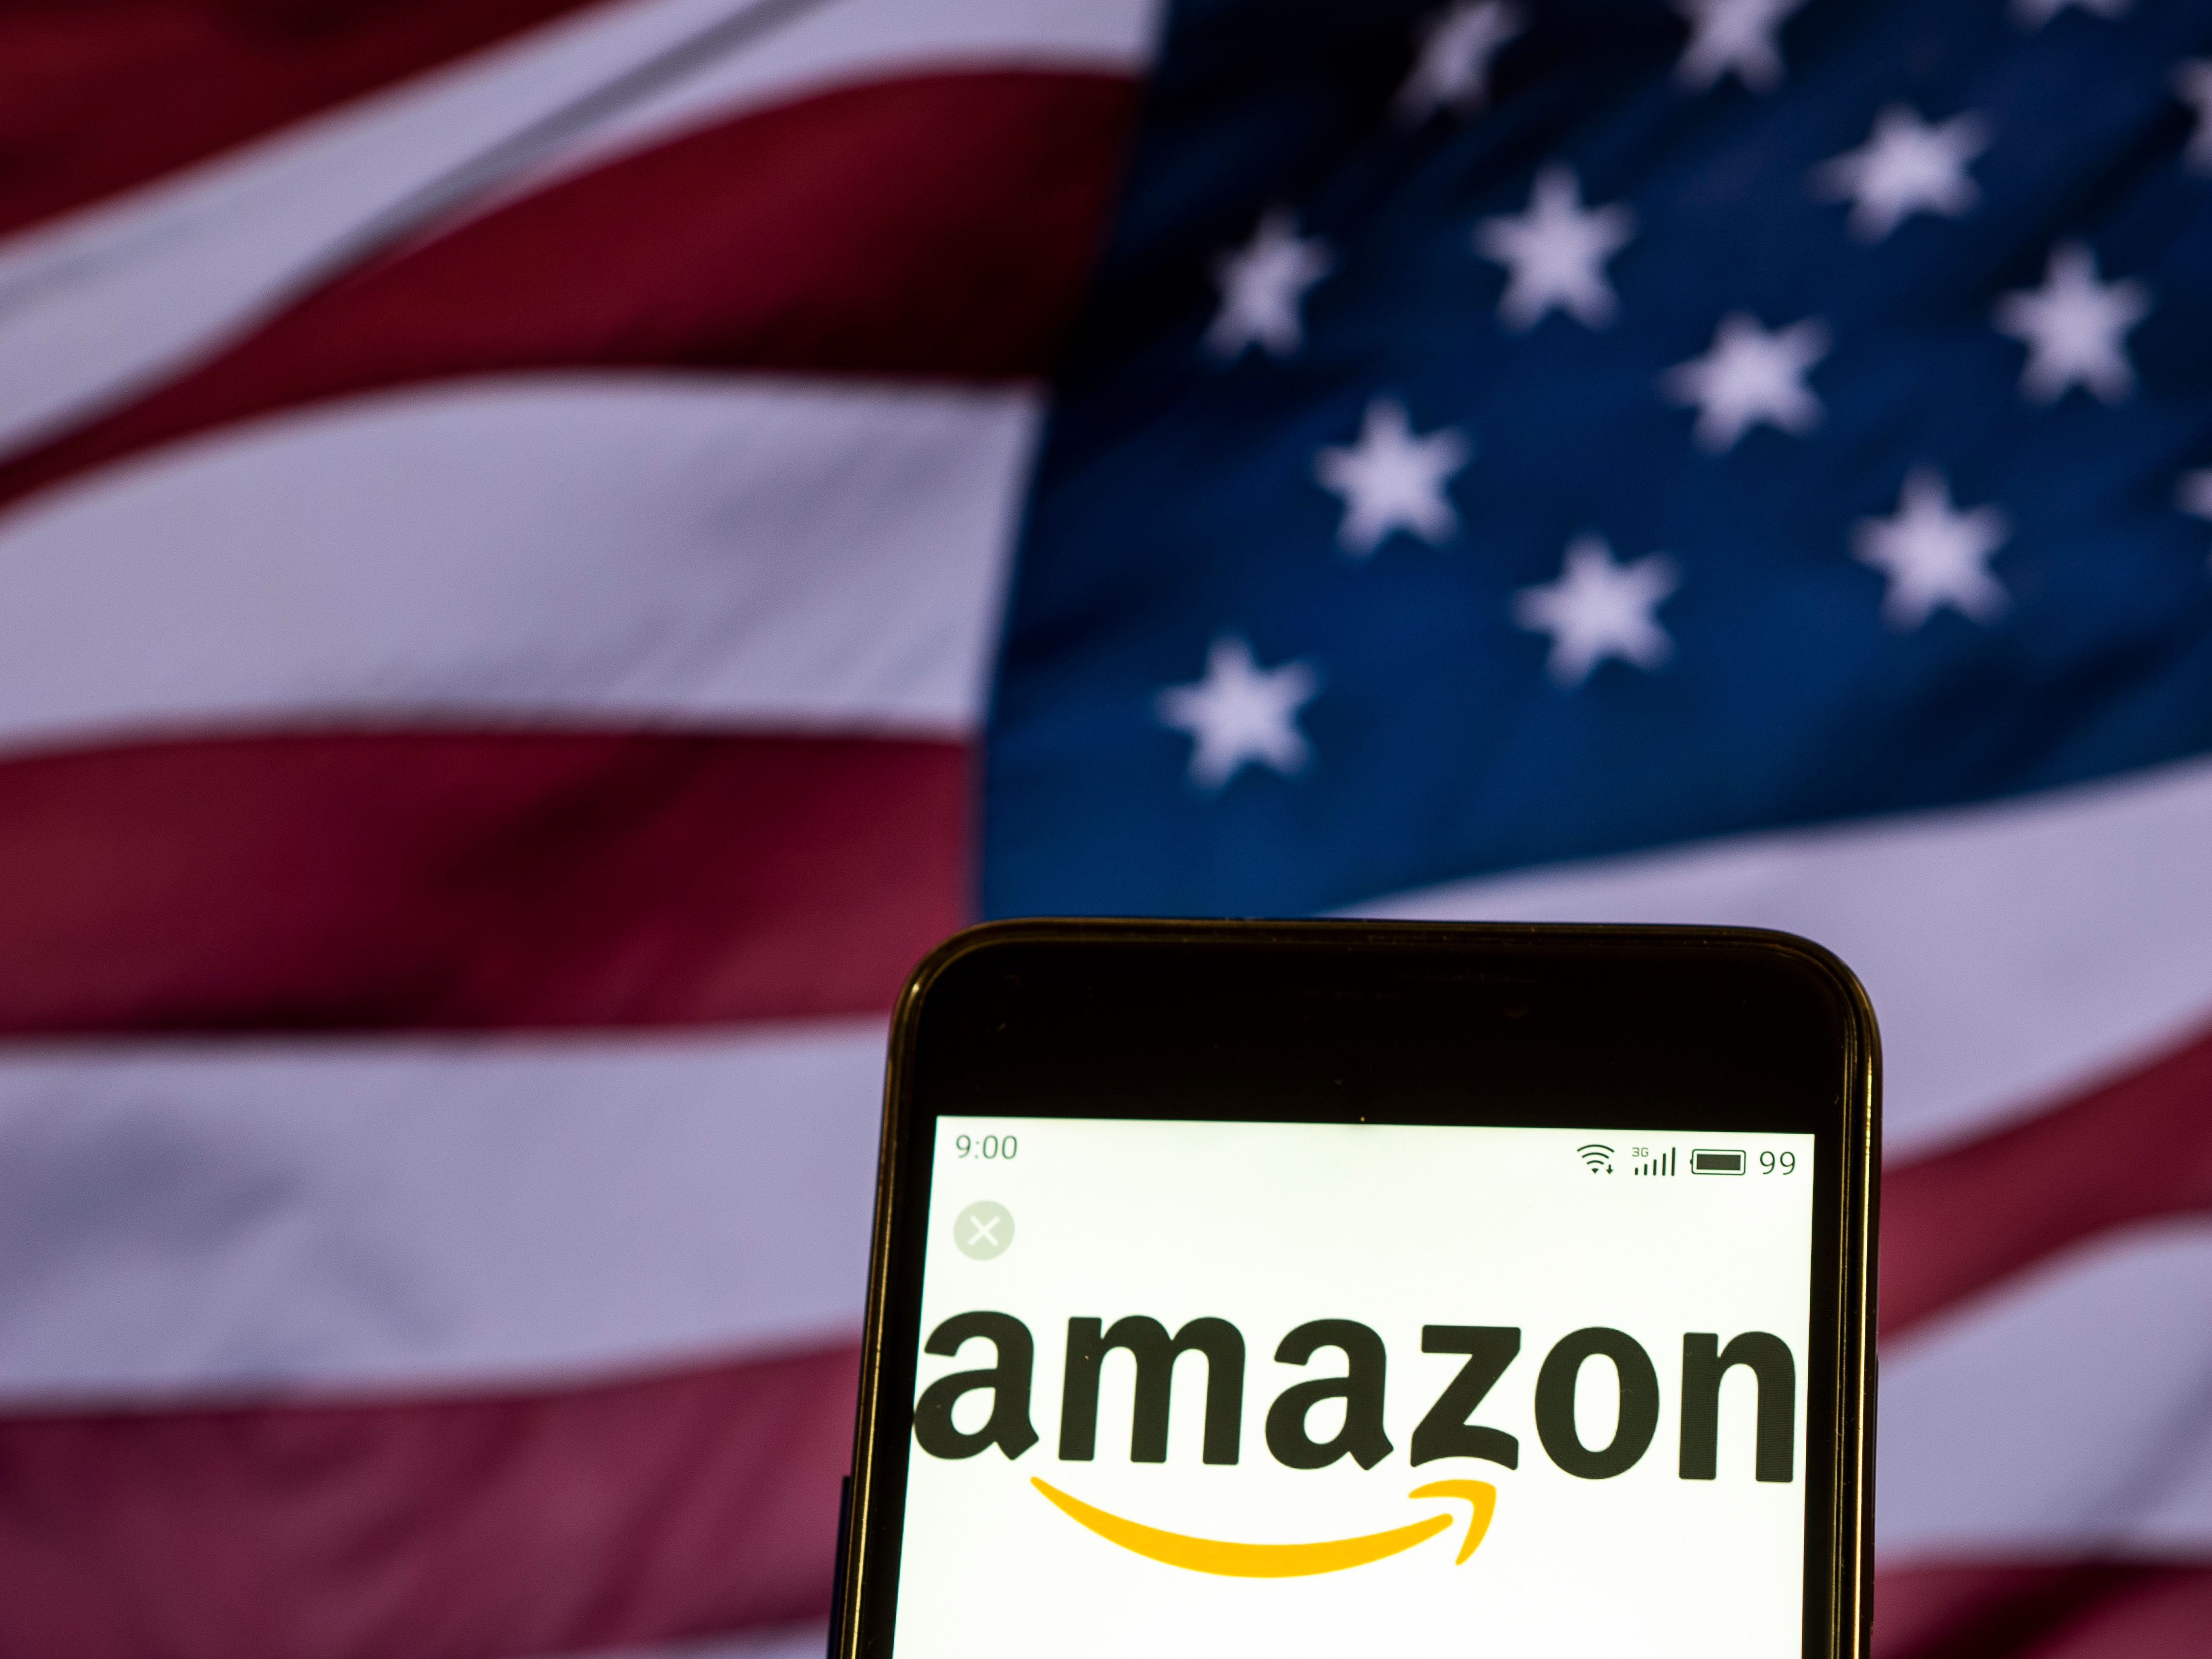 In October, media outlets reported that online retail giant Amazon pitched its facial recognition software to Immigration and